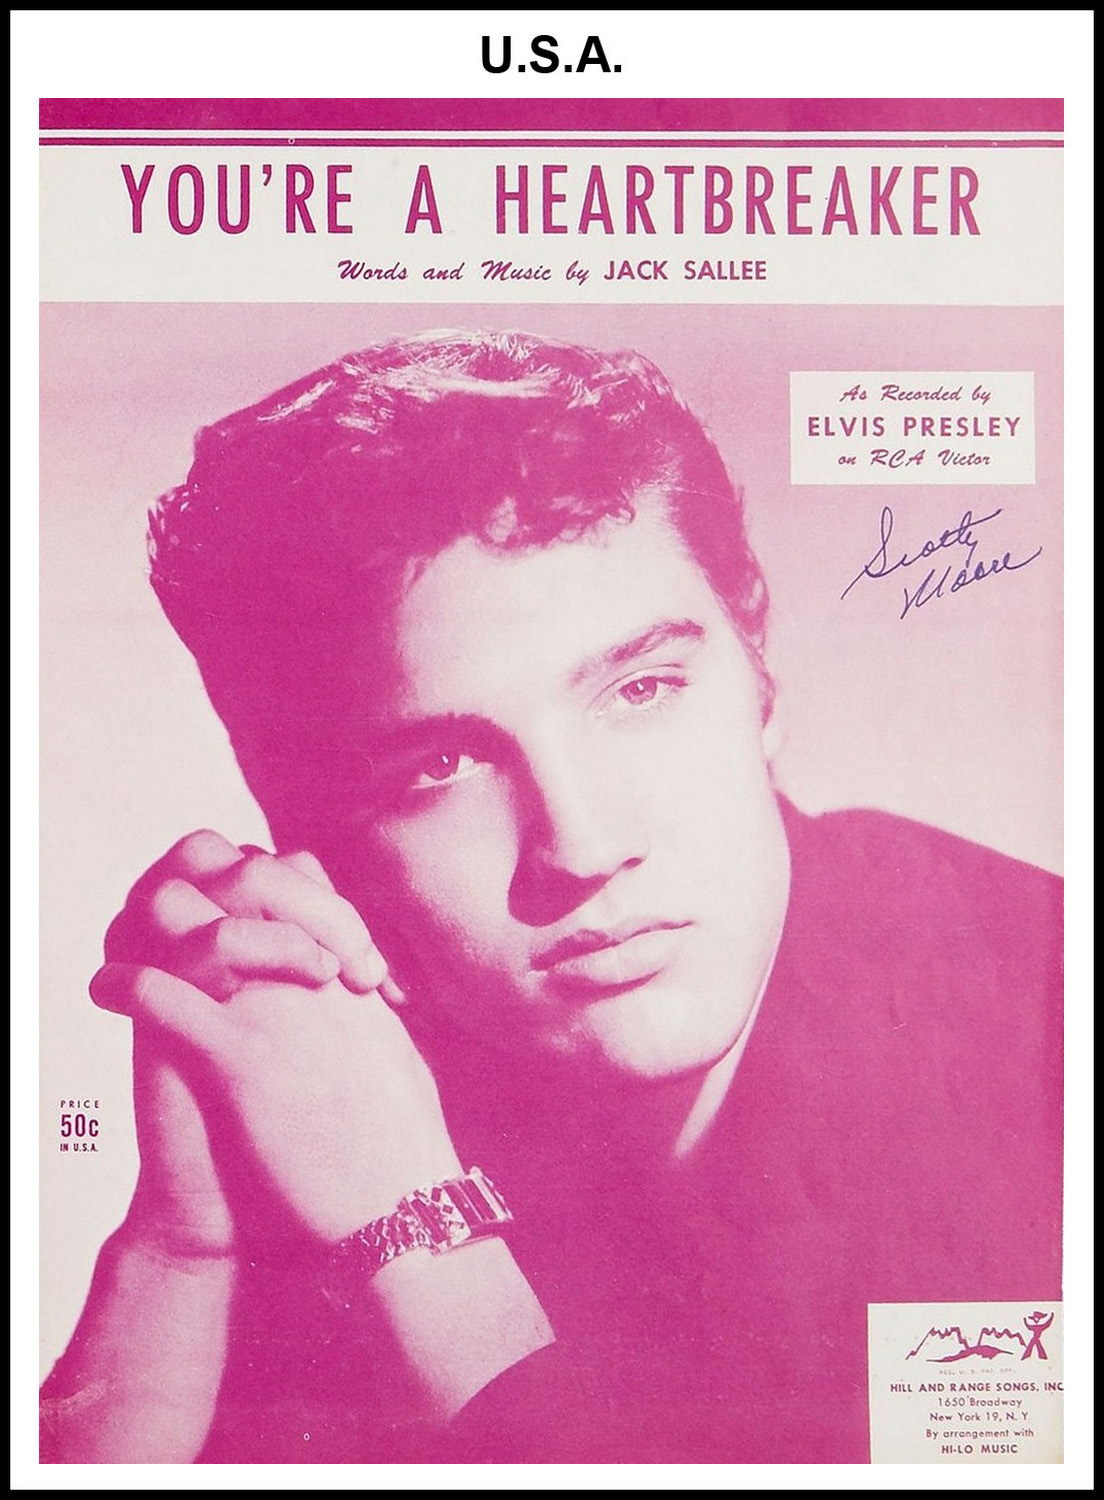 1954 - You're A Heartbreaker (USA 50c)